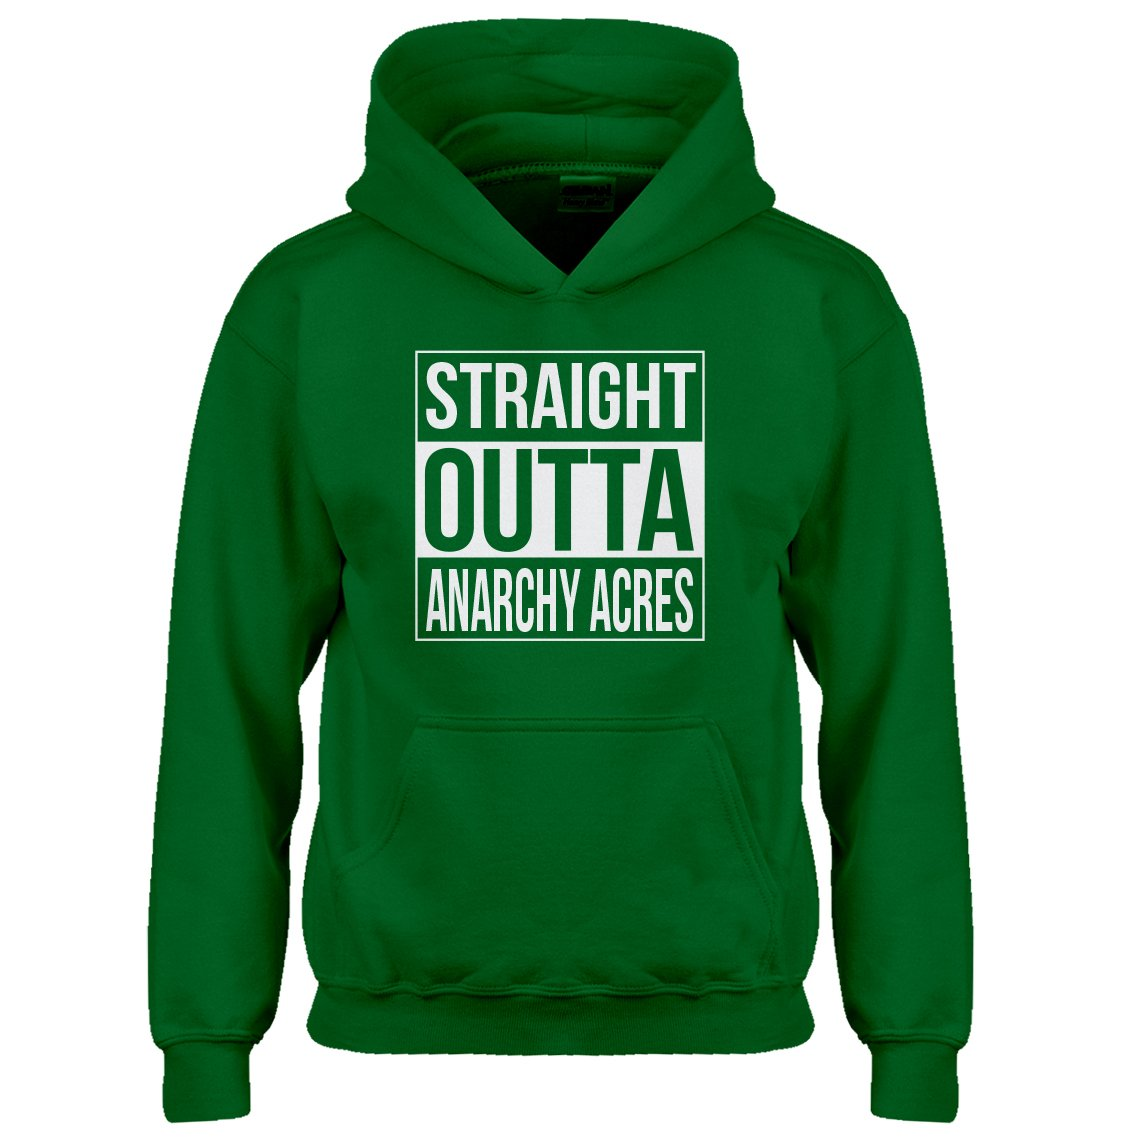 Indica Plateau Straight Outta Anarchy Acres Kids Hoodie 3338-Z